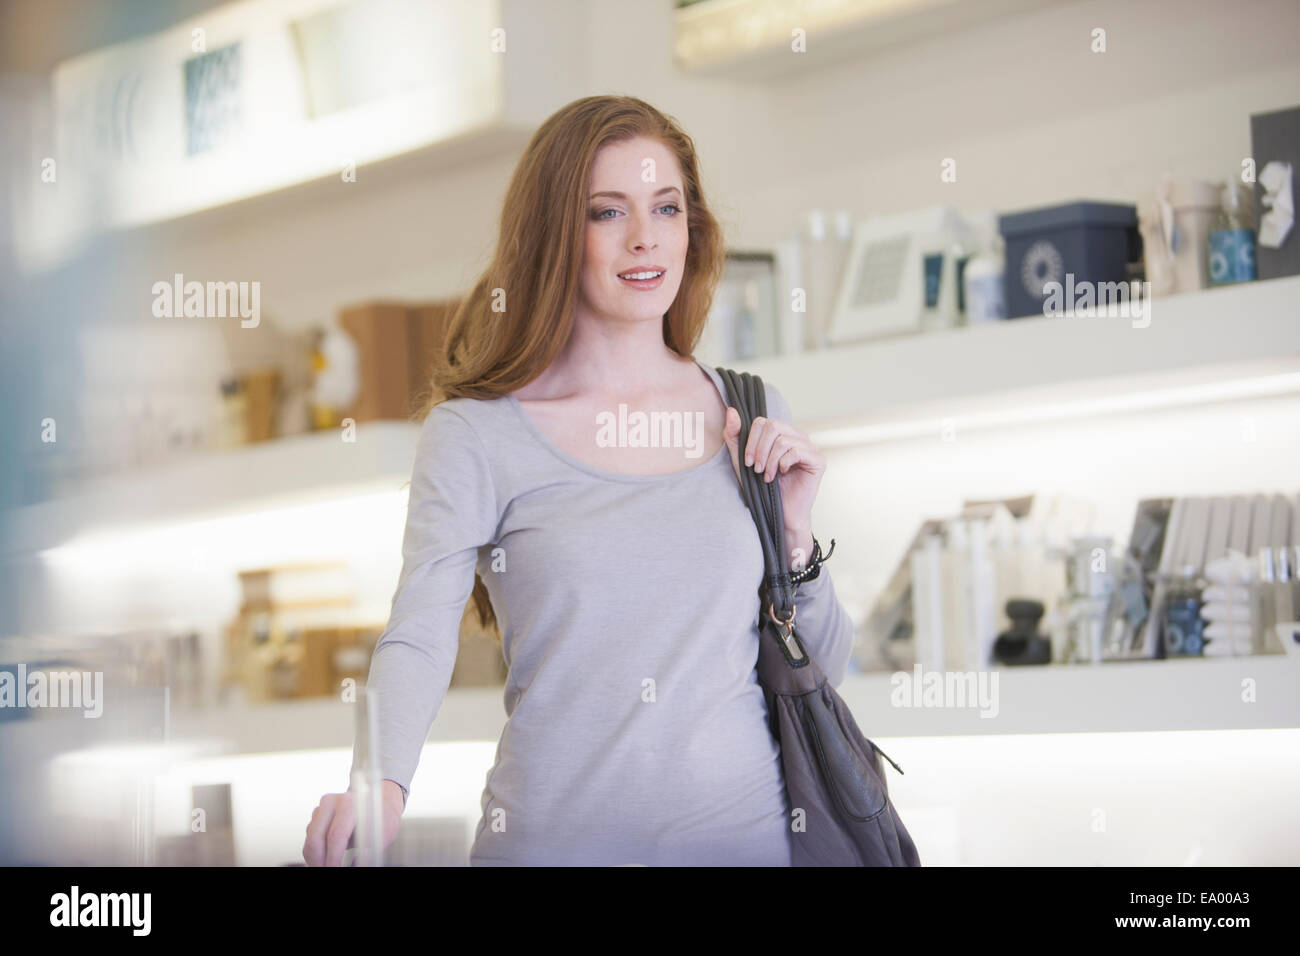 Woman walking past products on display shelves - Stock Image